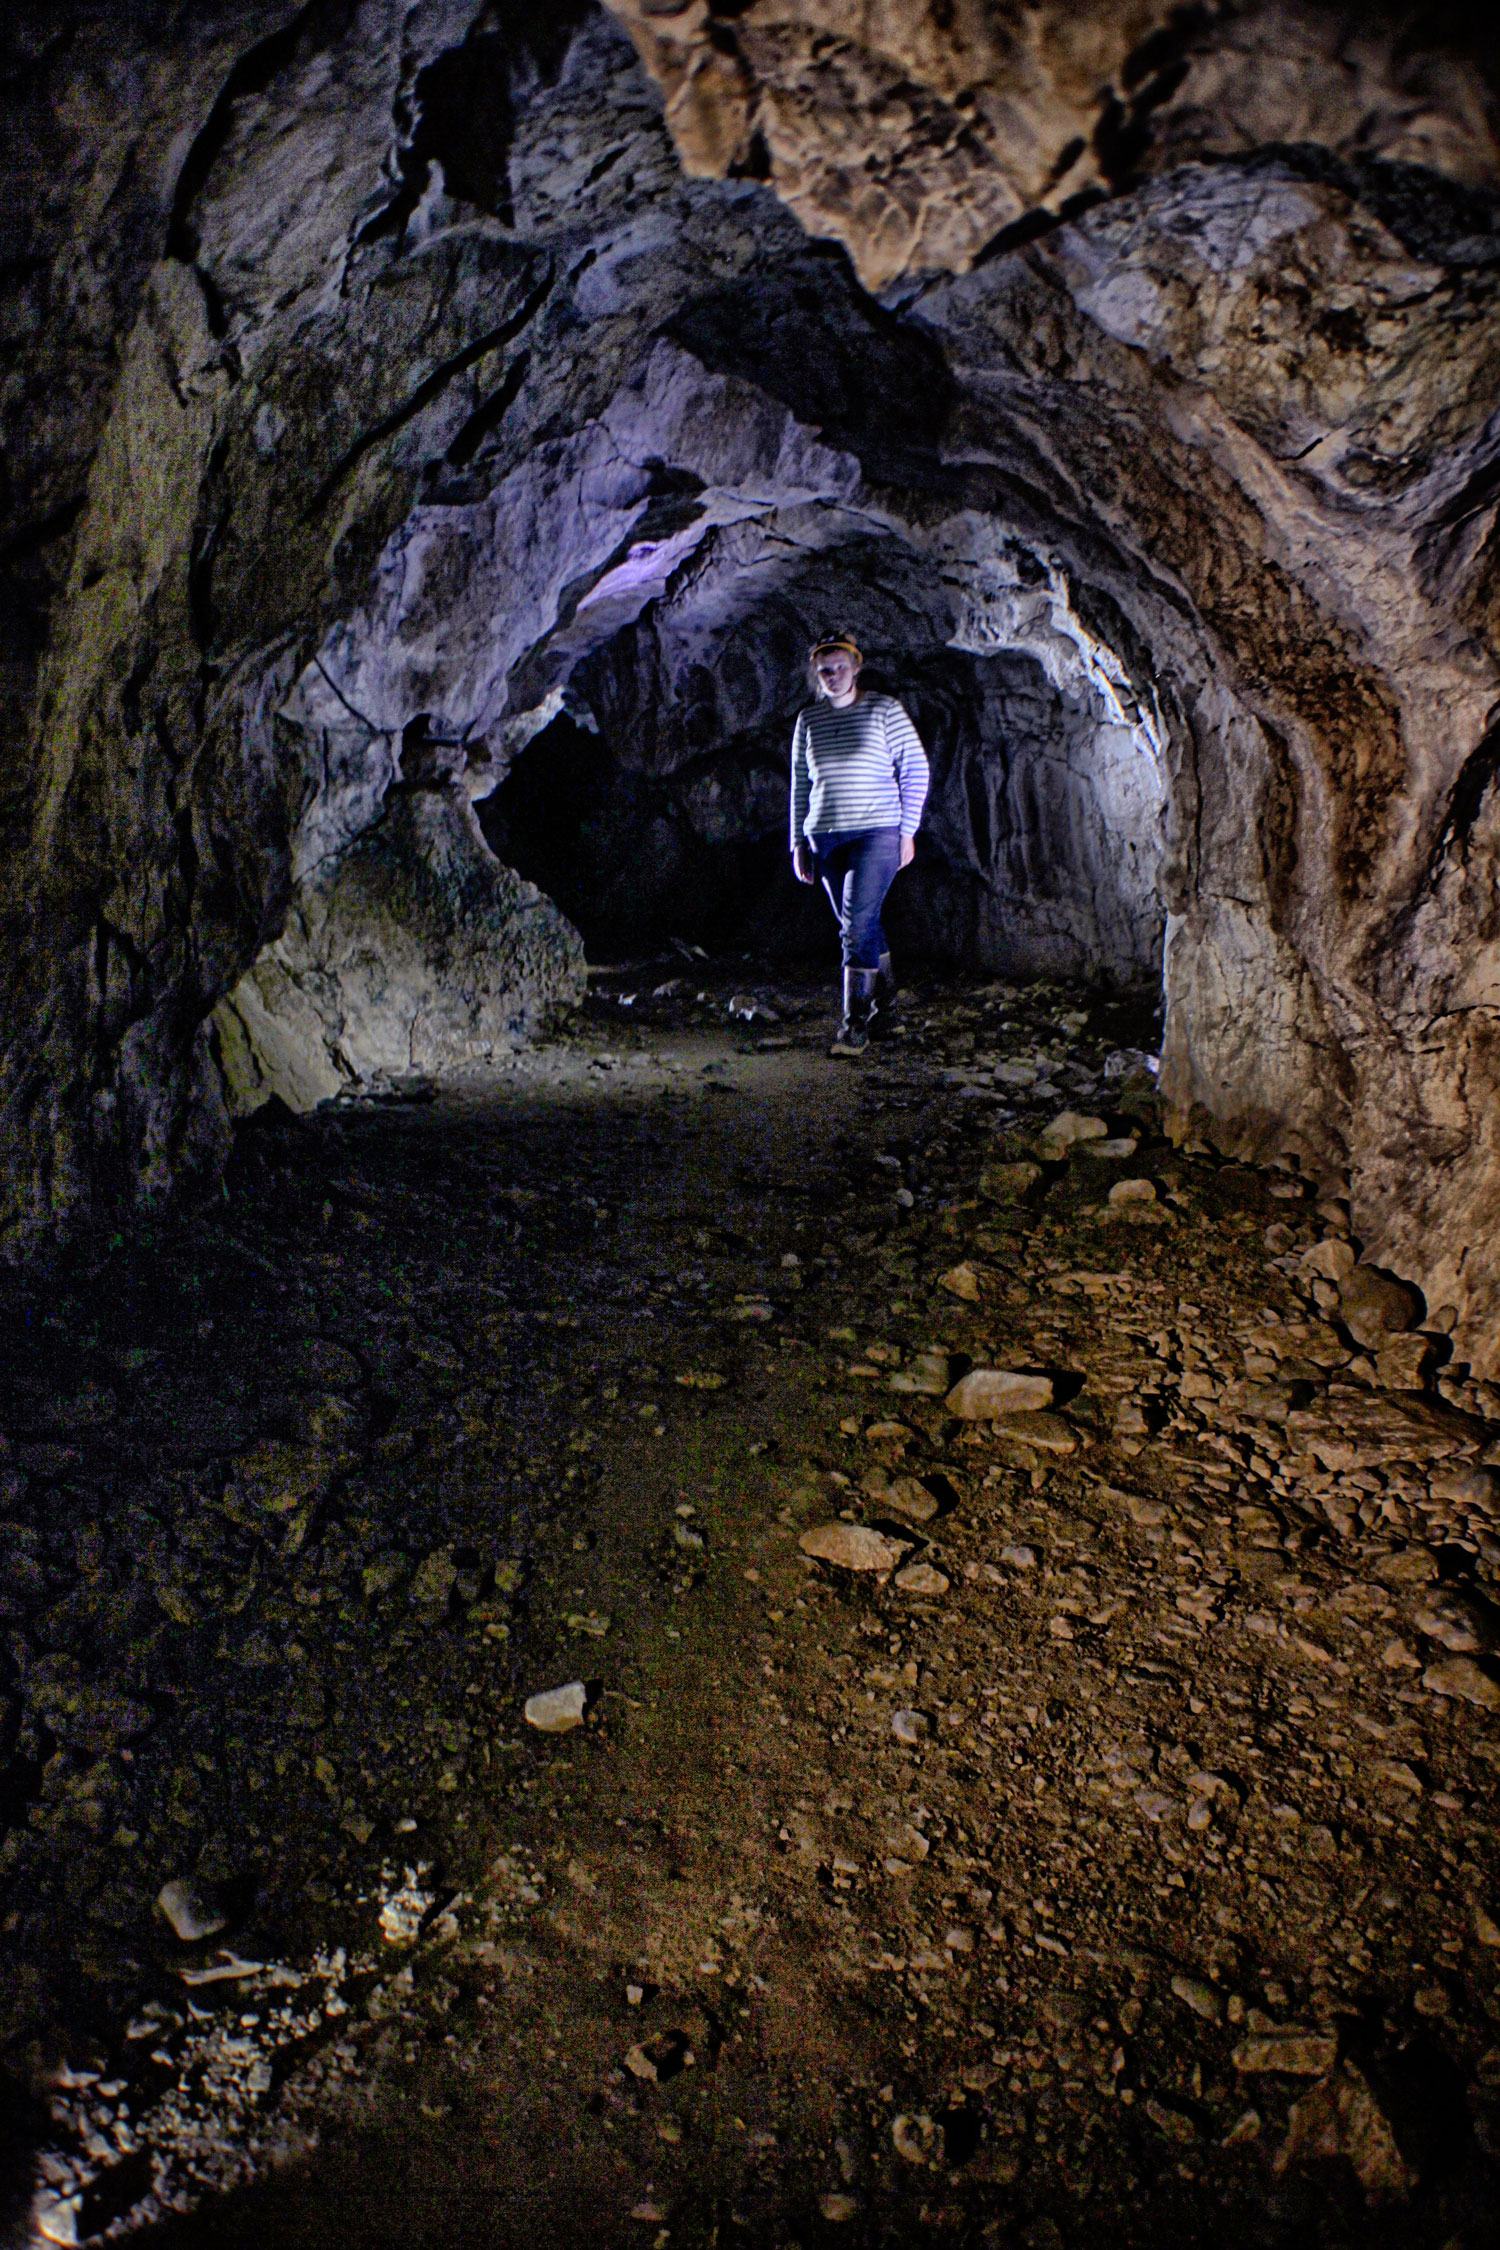 Jessica Petty, a POW local, walking through El Capitan Cave. This portion of the cave is outside the bat gate, and is accessible without a guide or reservation. It is the easiest walking portion of any part of the cave. Photo by Brooke Kubby.